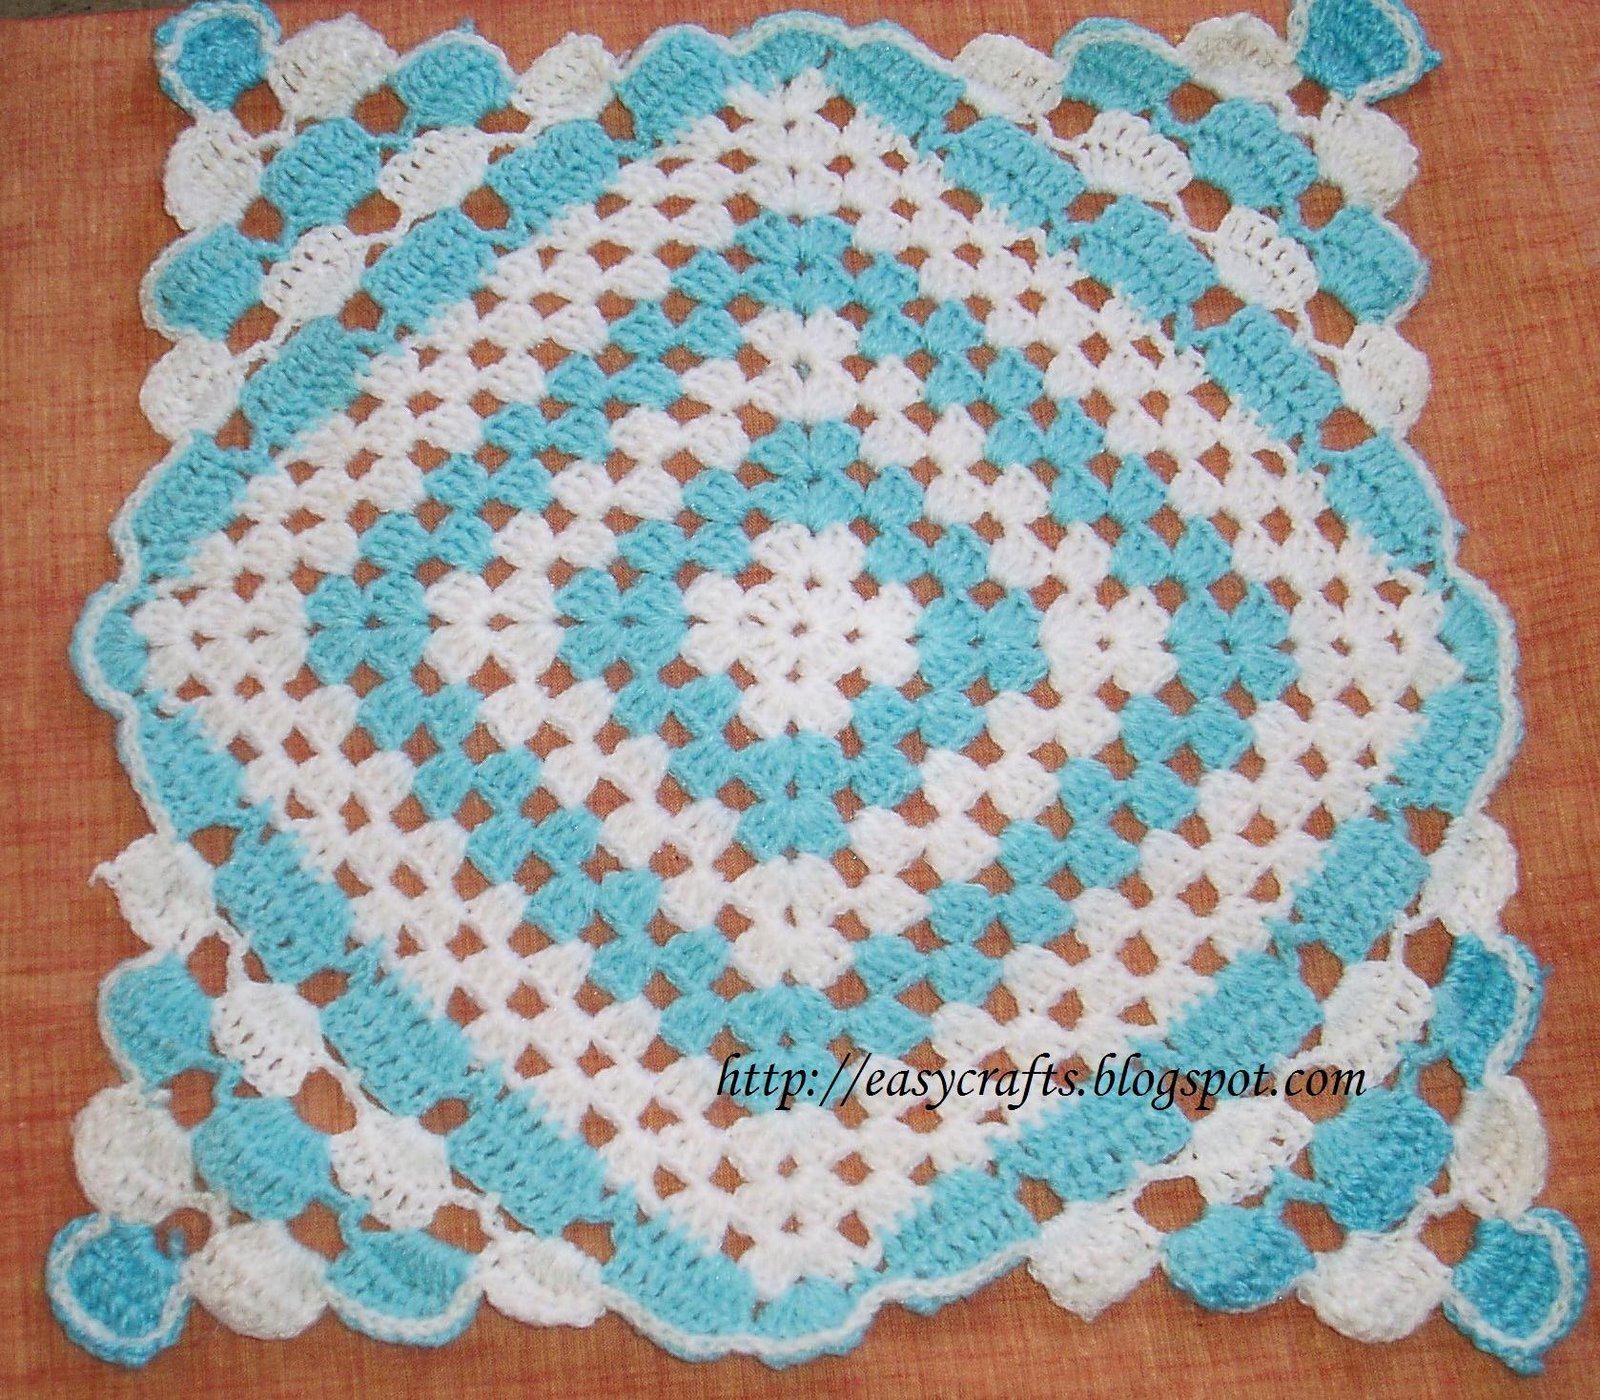 Crocheting Squares : Easy Crafts - Explore your creativity: Crochet Square pattern